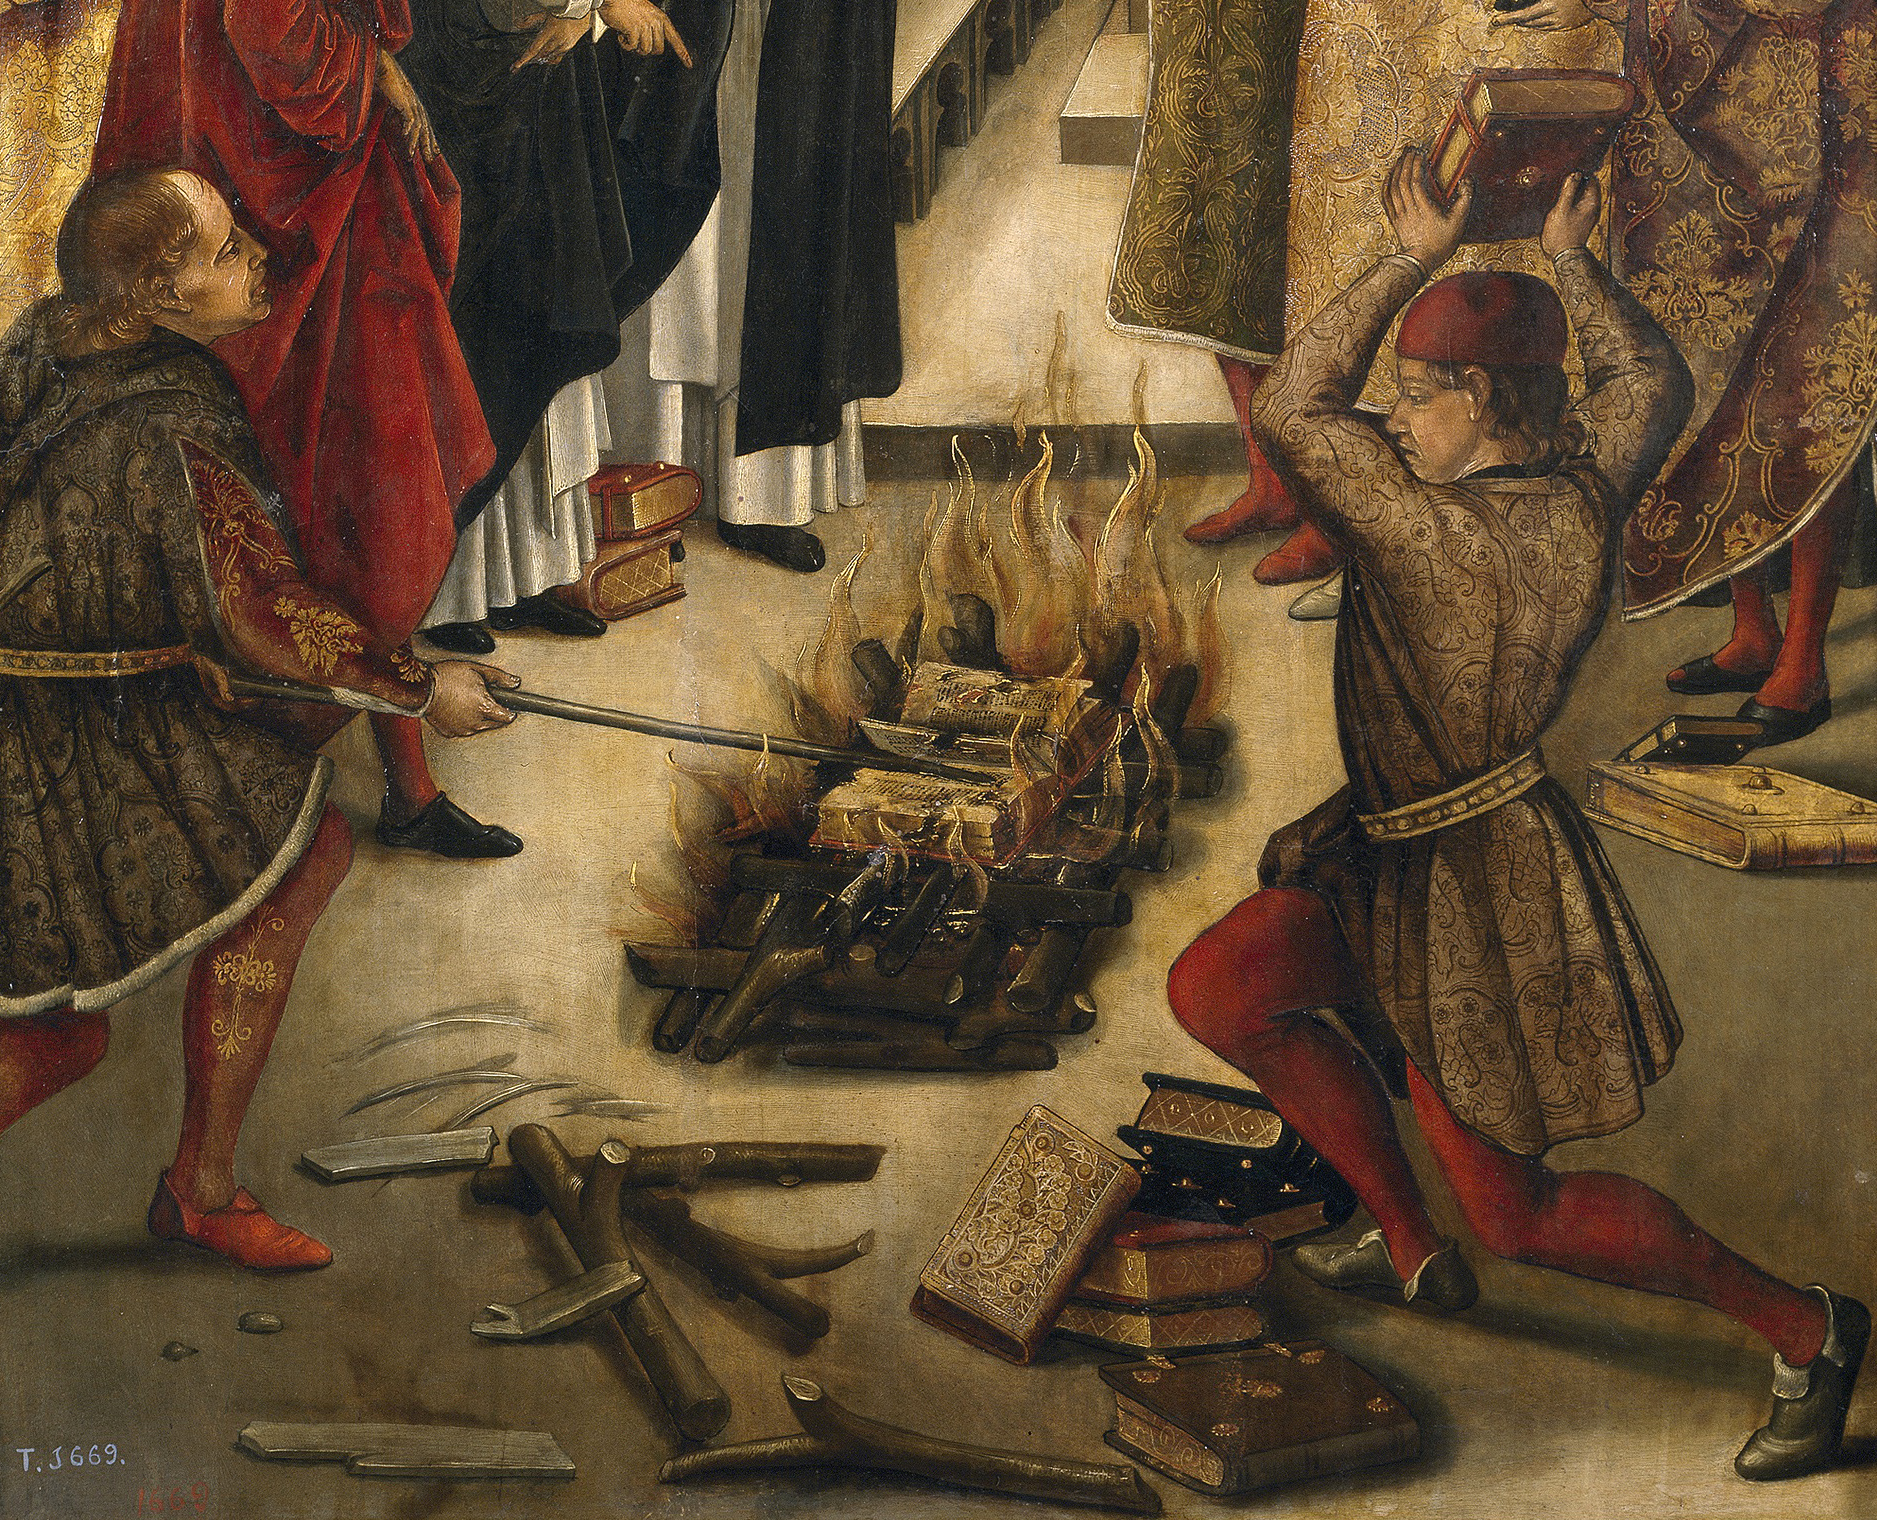 Painting of a book burning